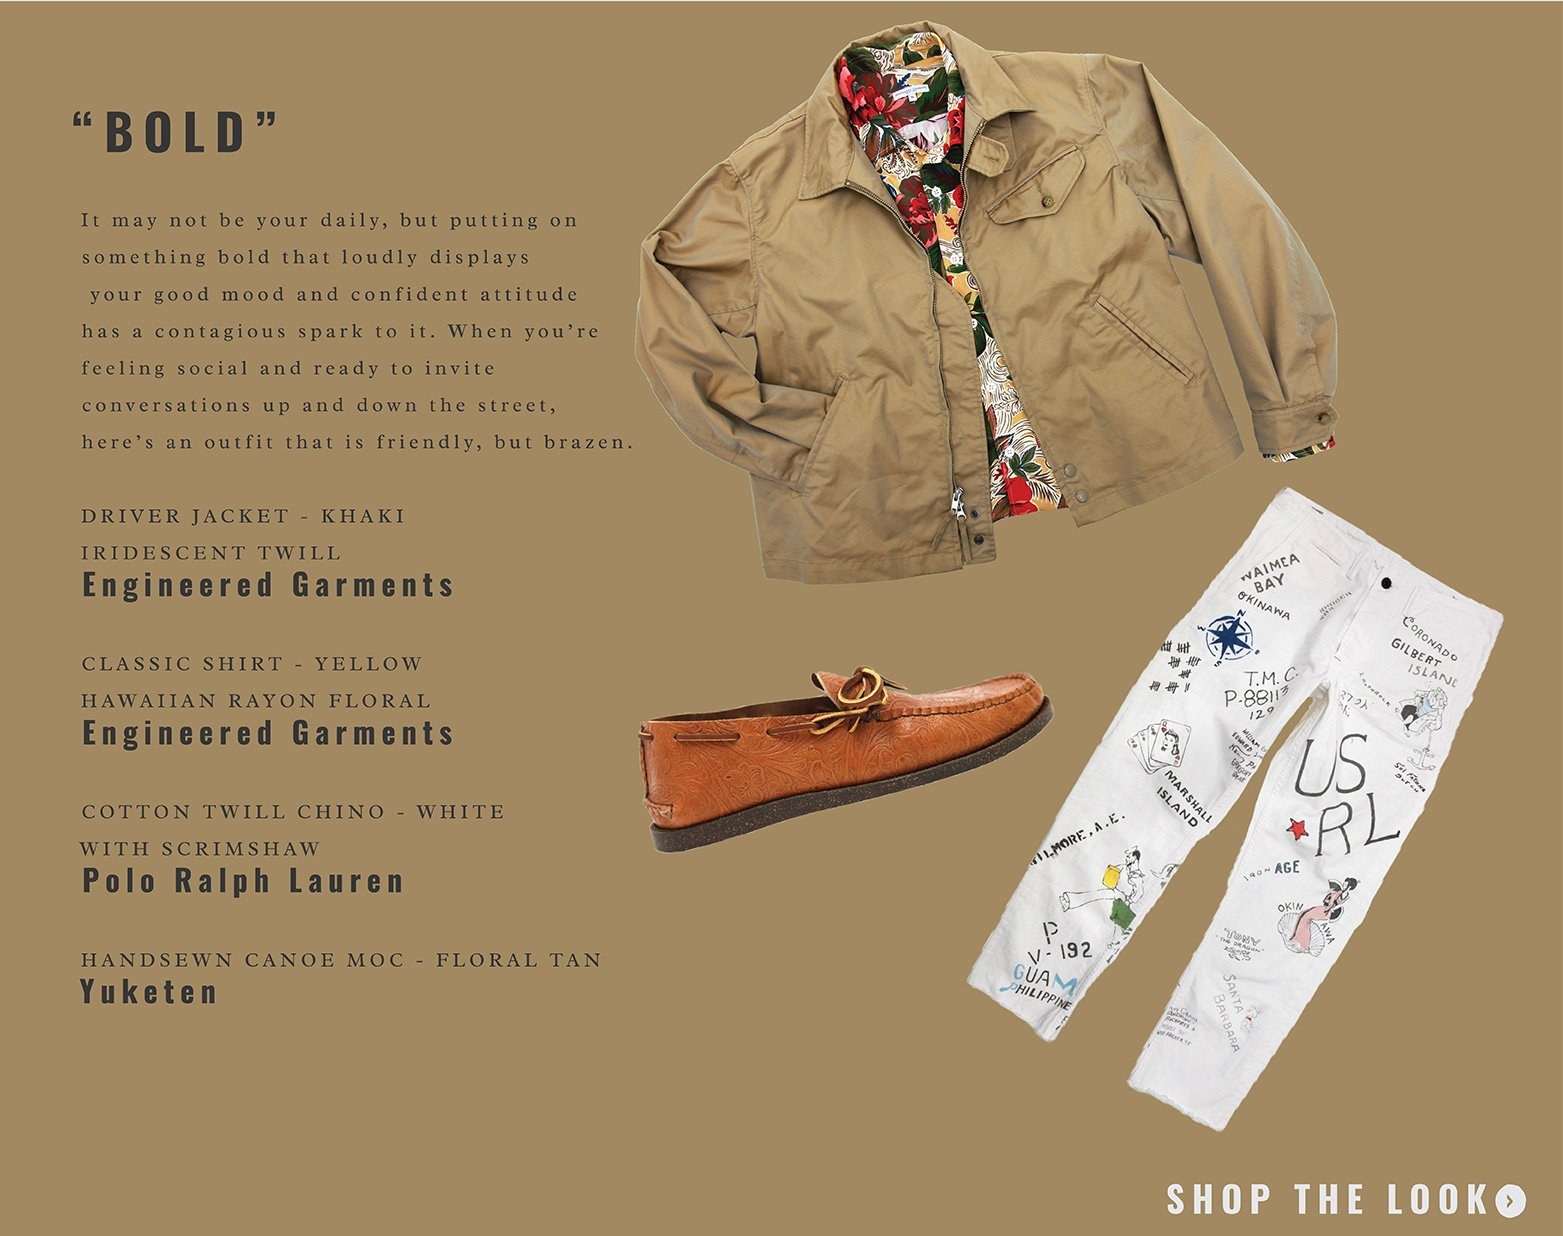 what to wear featuring engineered garments, polo ralph lauren and yuketen